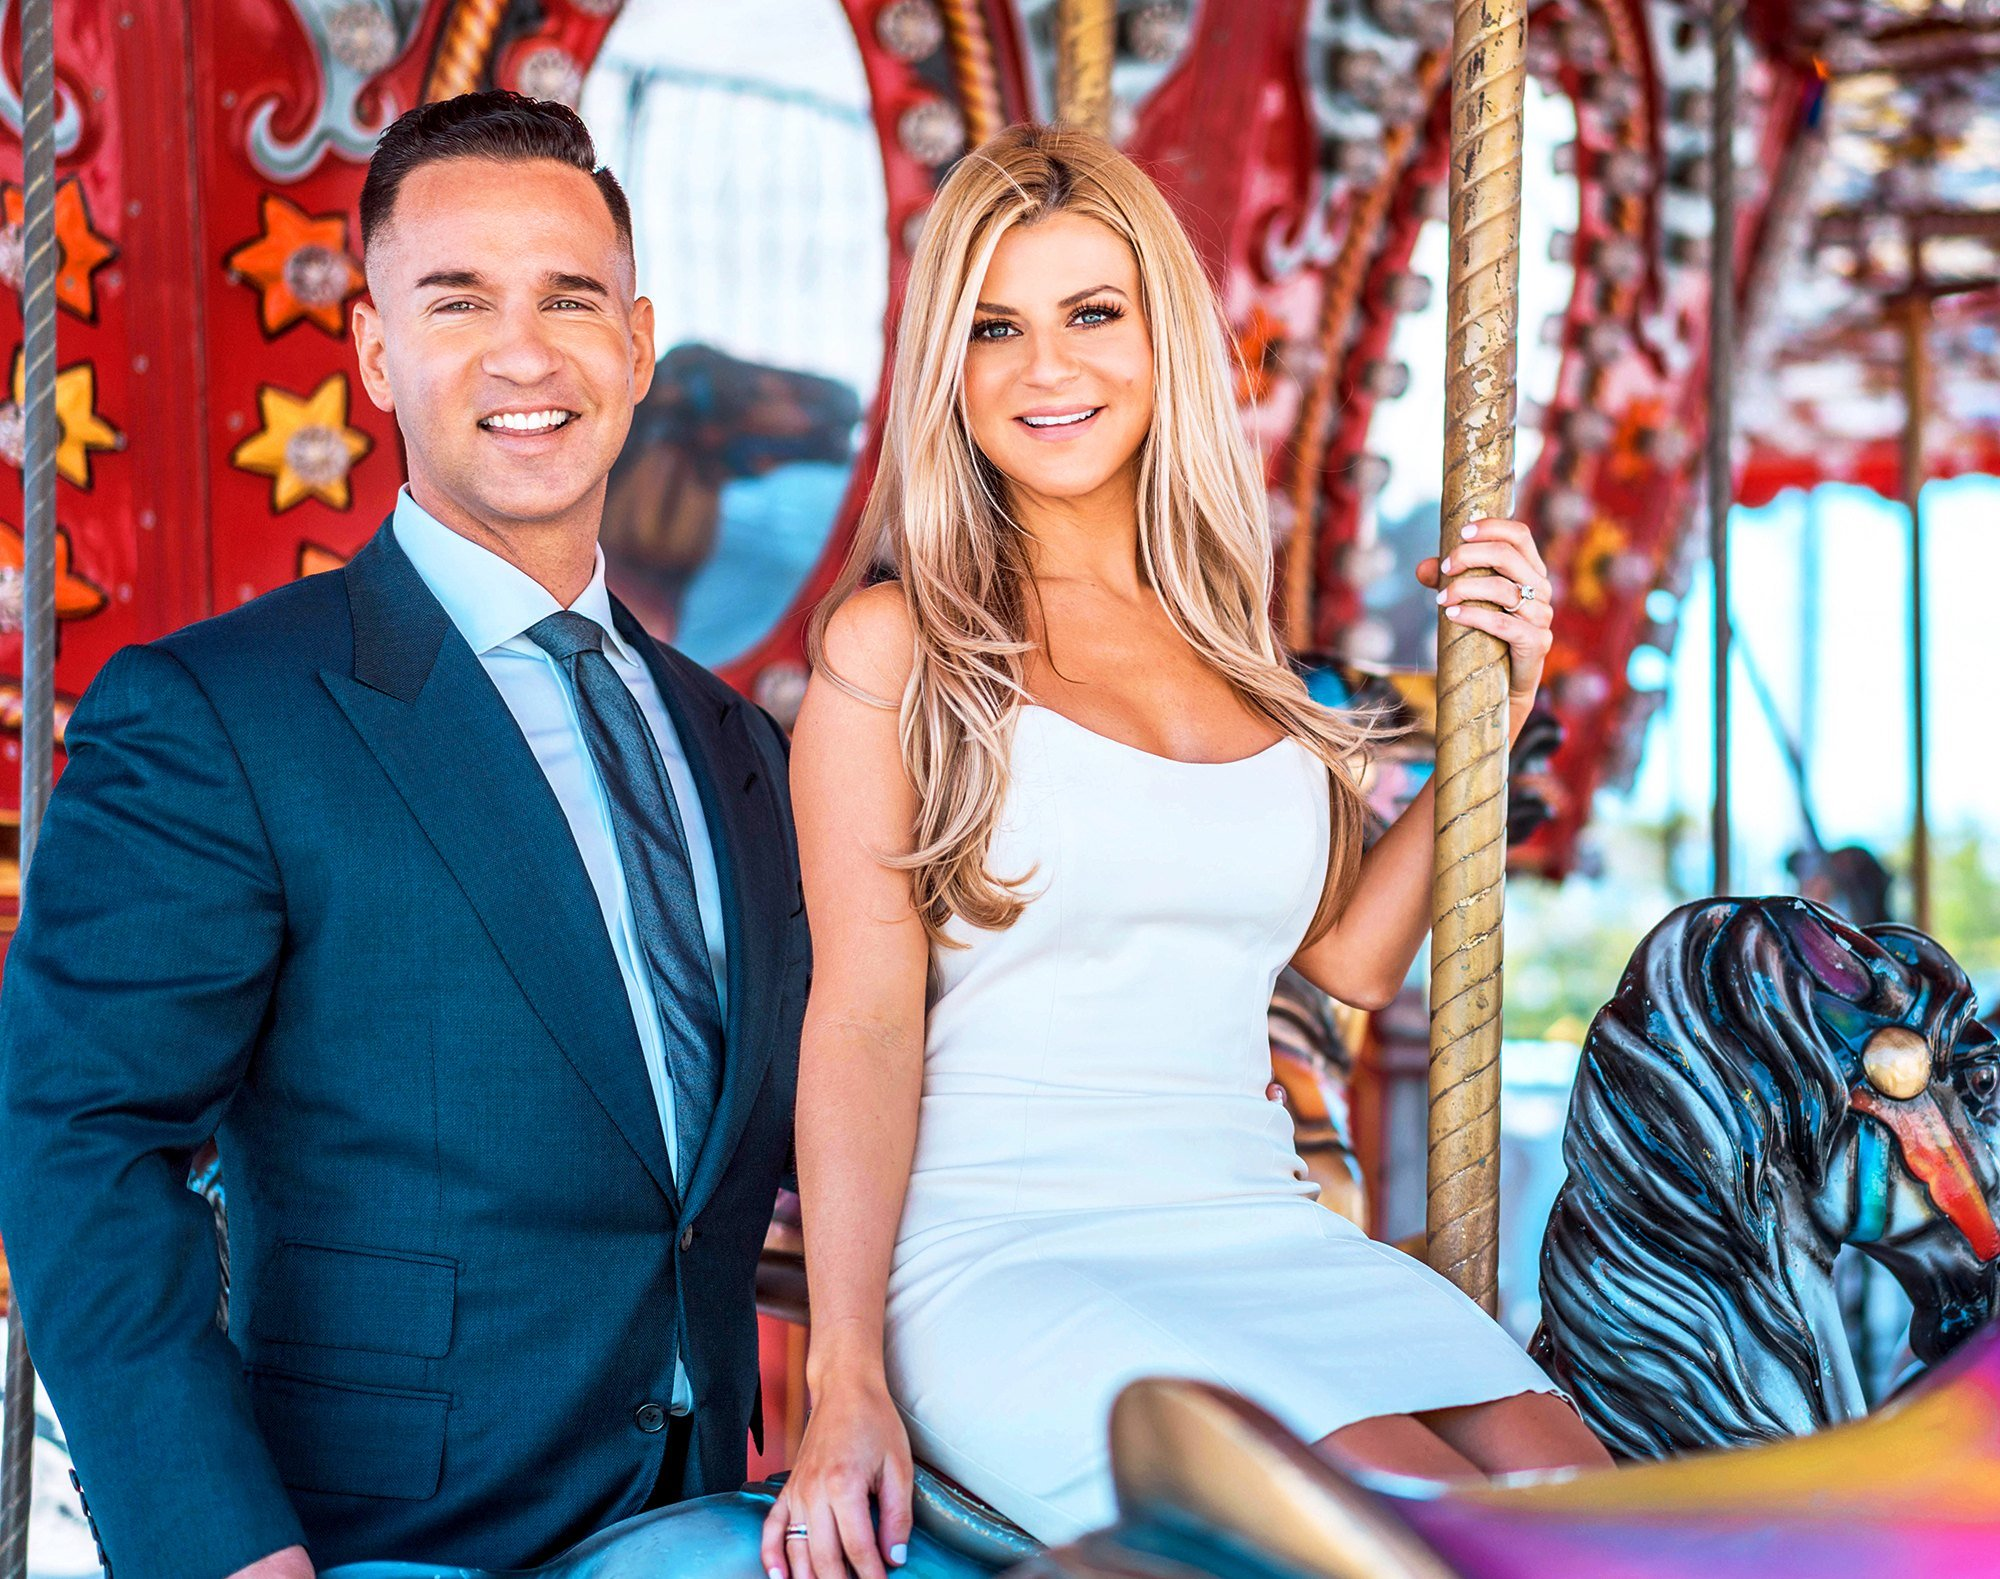 The Situation And His Wife Lauren Announce The Sex Of Their Unborn Baby After Holiday-Themed Reveal Party!